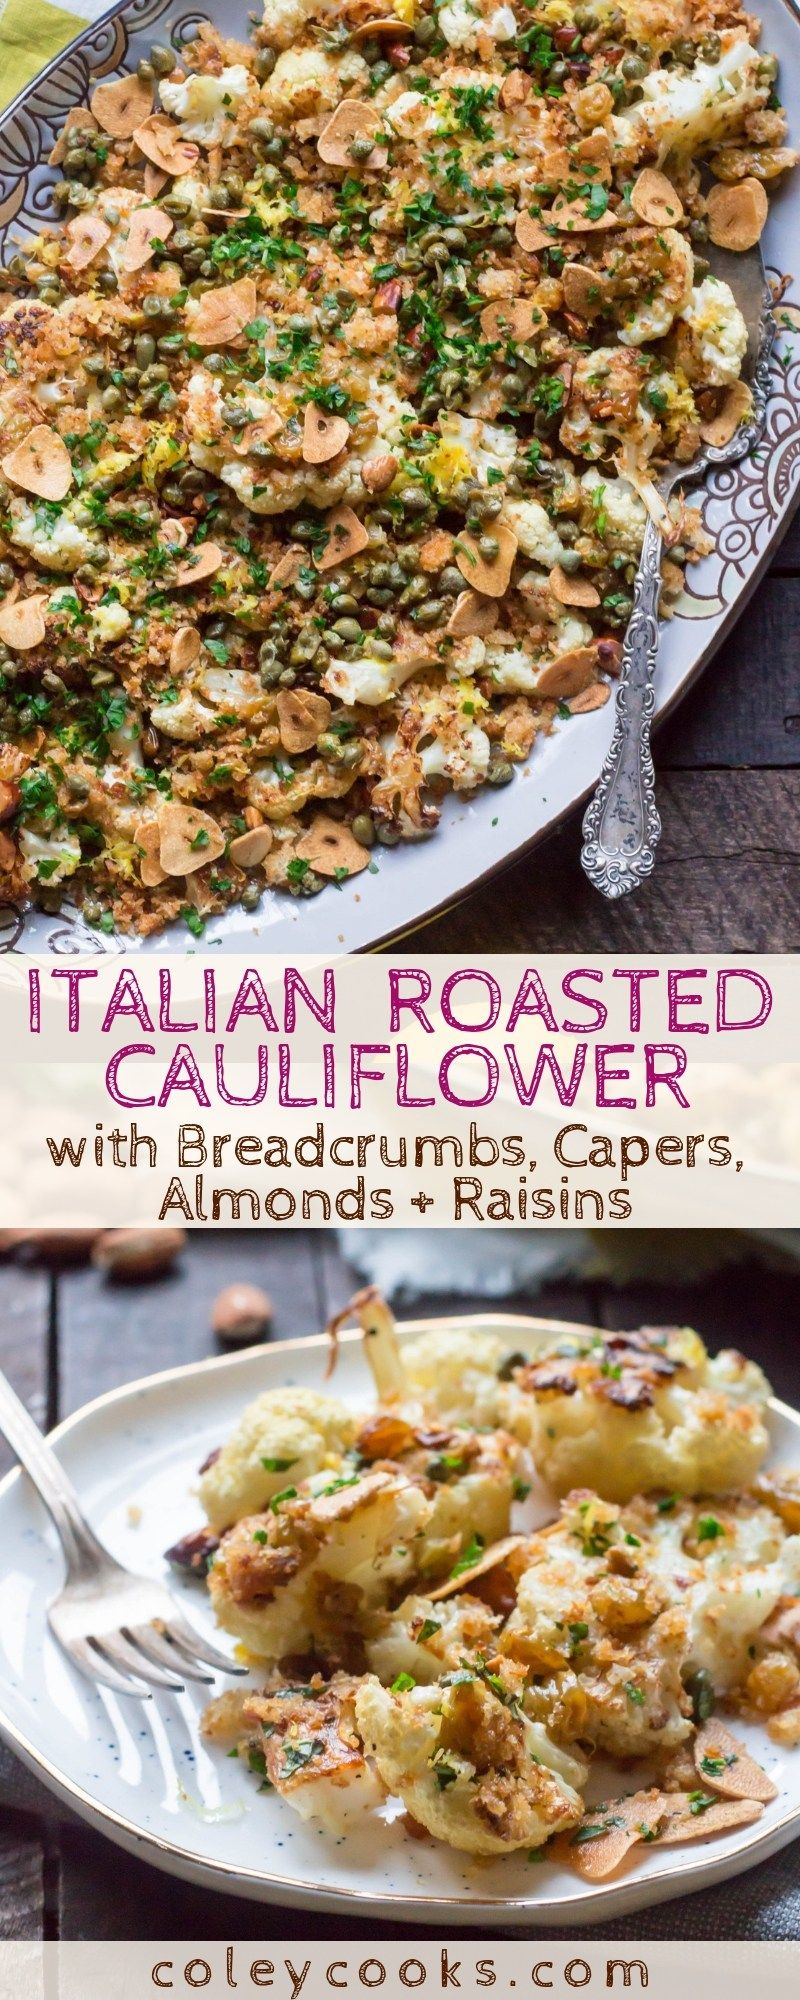 Roasted Cauliflower With Breadcrumbs Capers Almonds Raisins